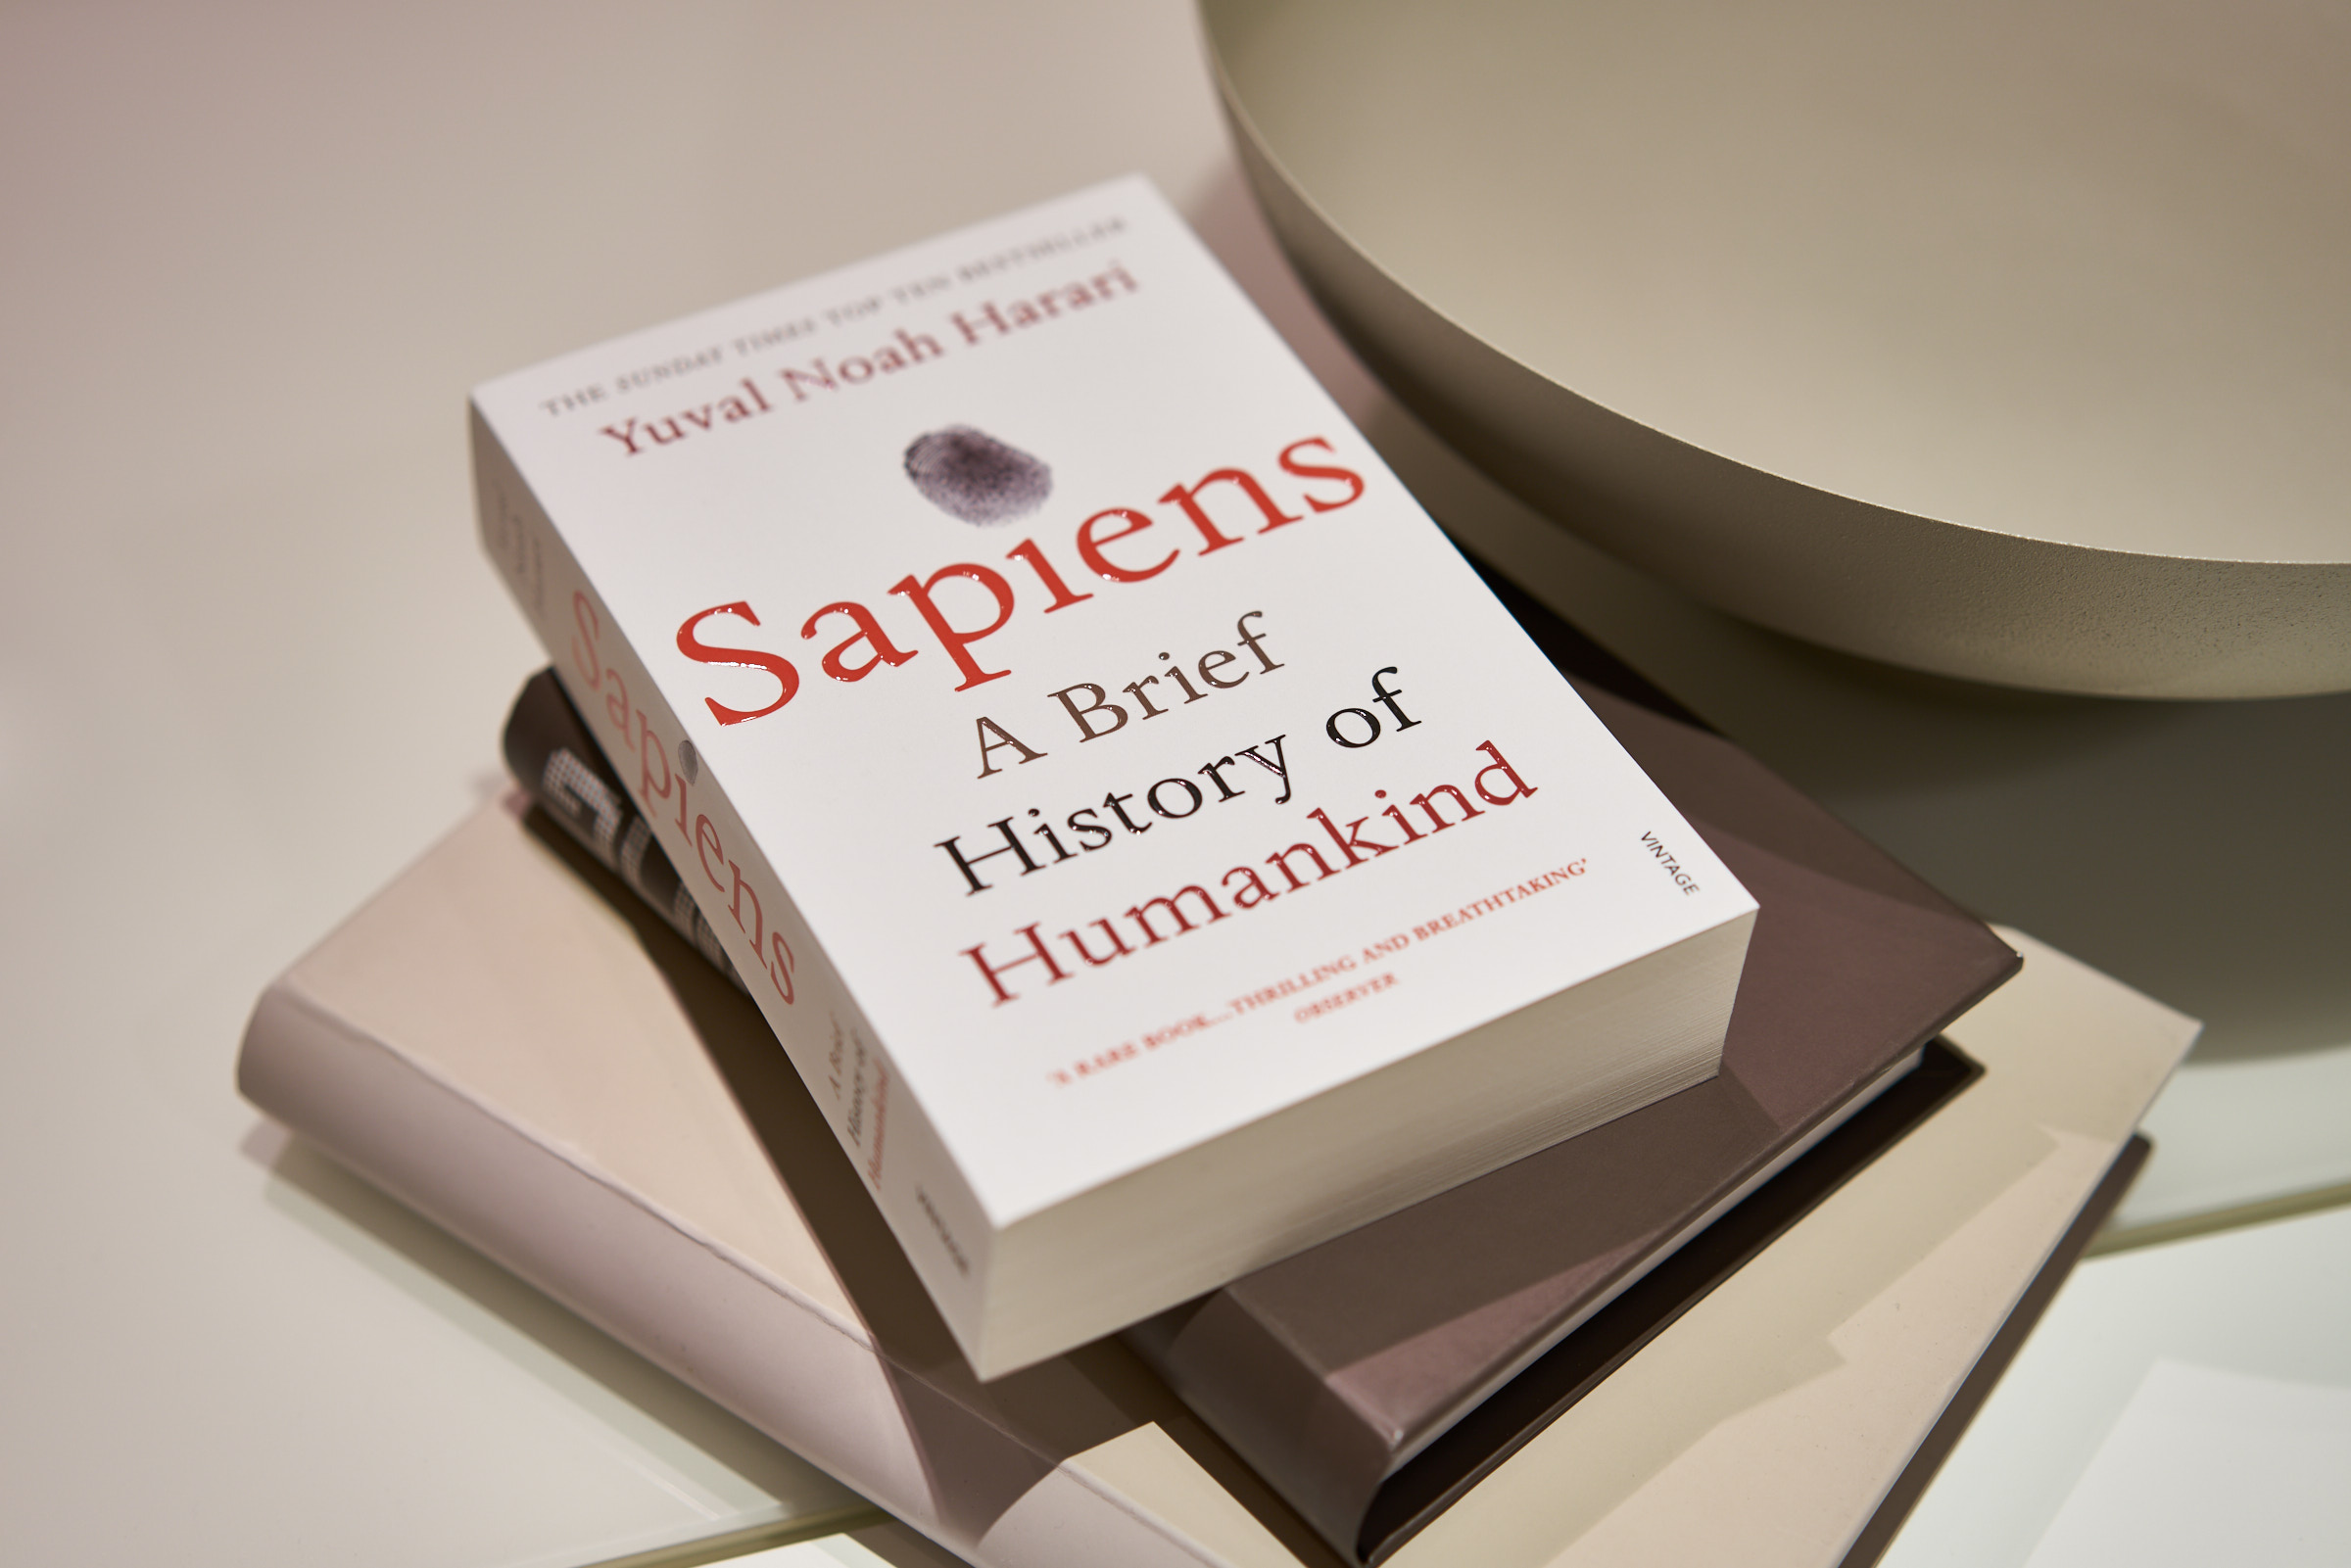 Sapiens Book Review - HEY GENTS